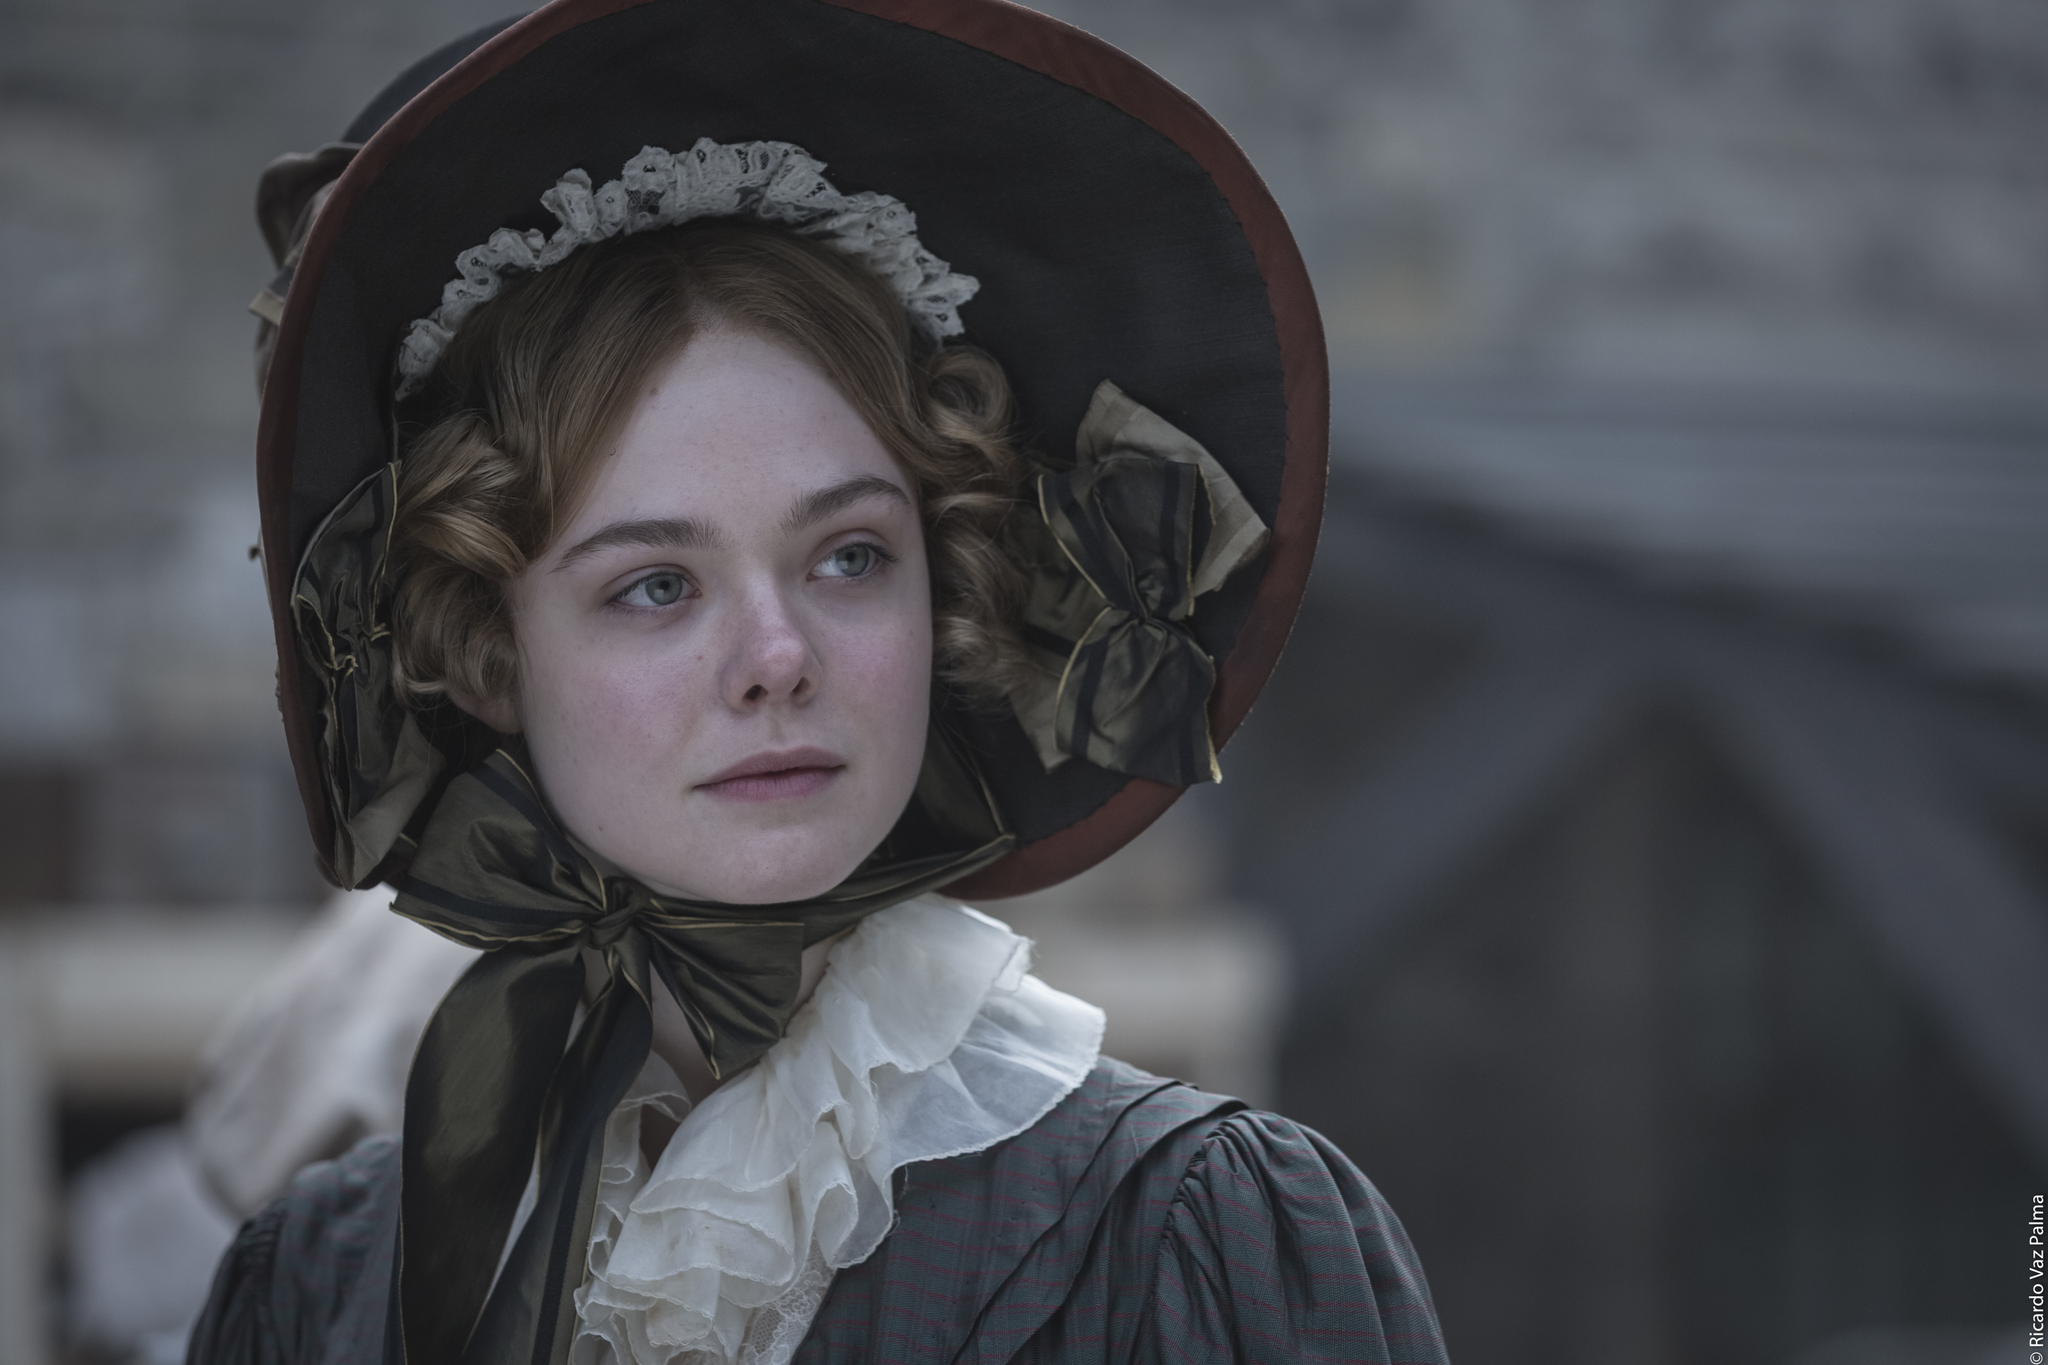 Elle Fanning interpreta Mary Shelley